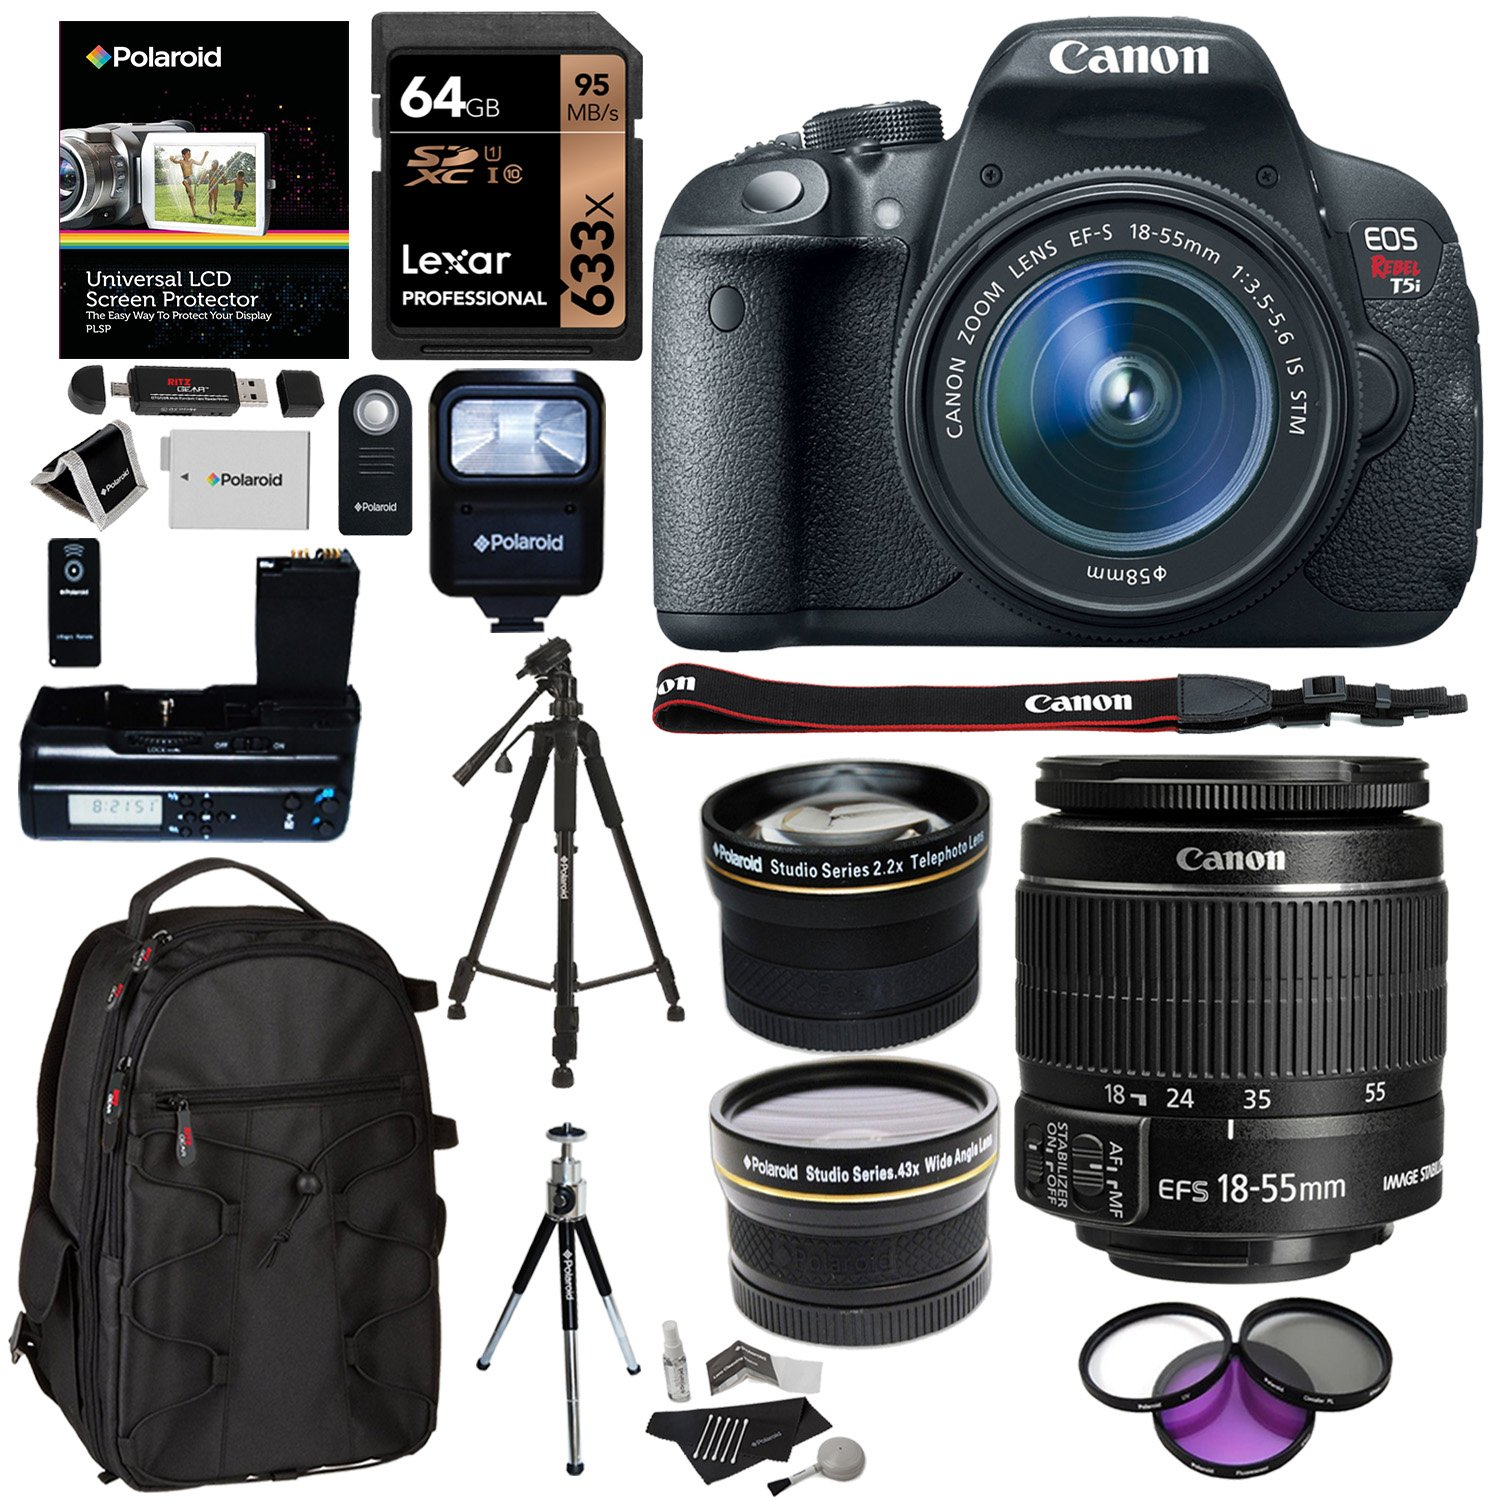 Canon EF-S 18-55mm f//3.5-5.6 is II Standard Zoom Lens Accessory Bundle Cleaning Kit UV Filter 32GB SD Card for Canon XT1 6D